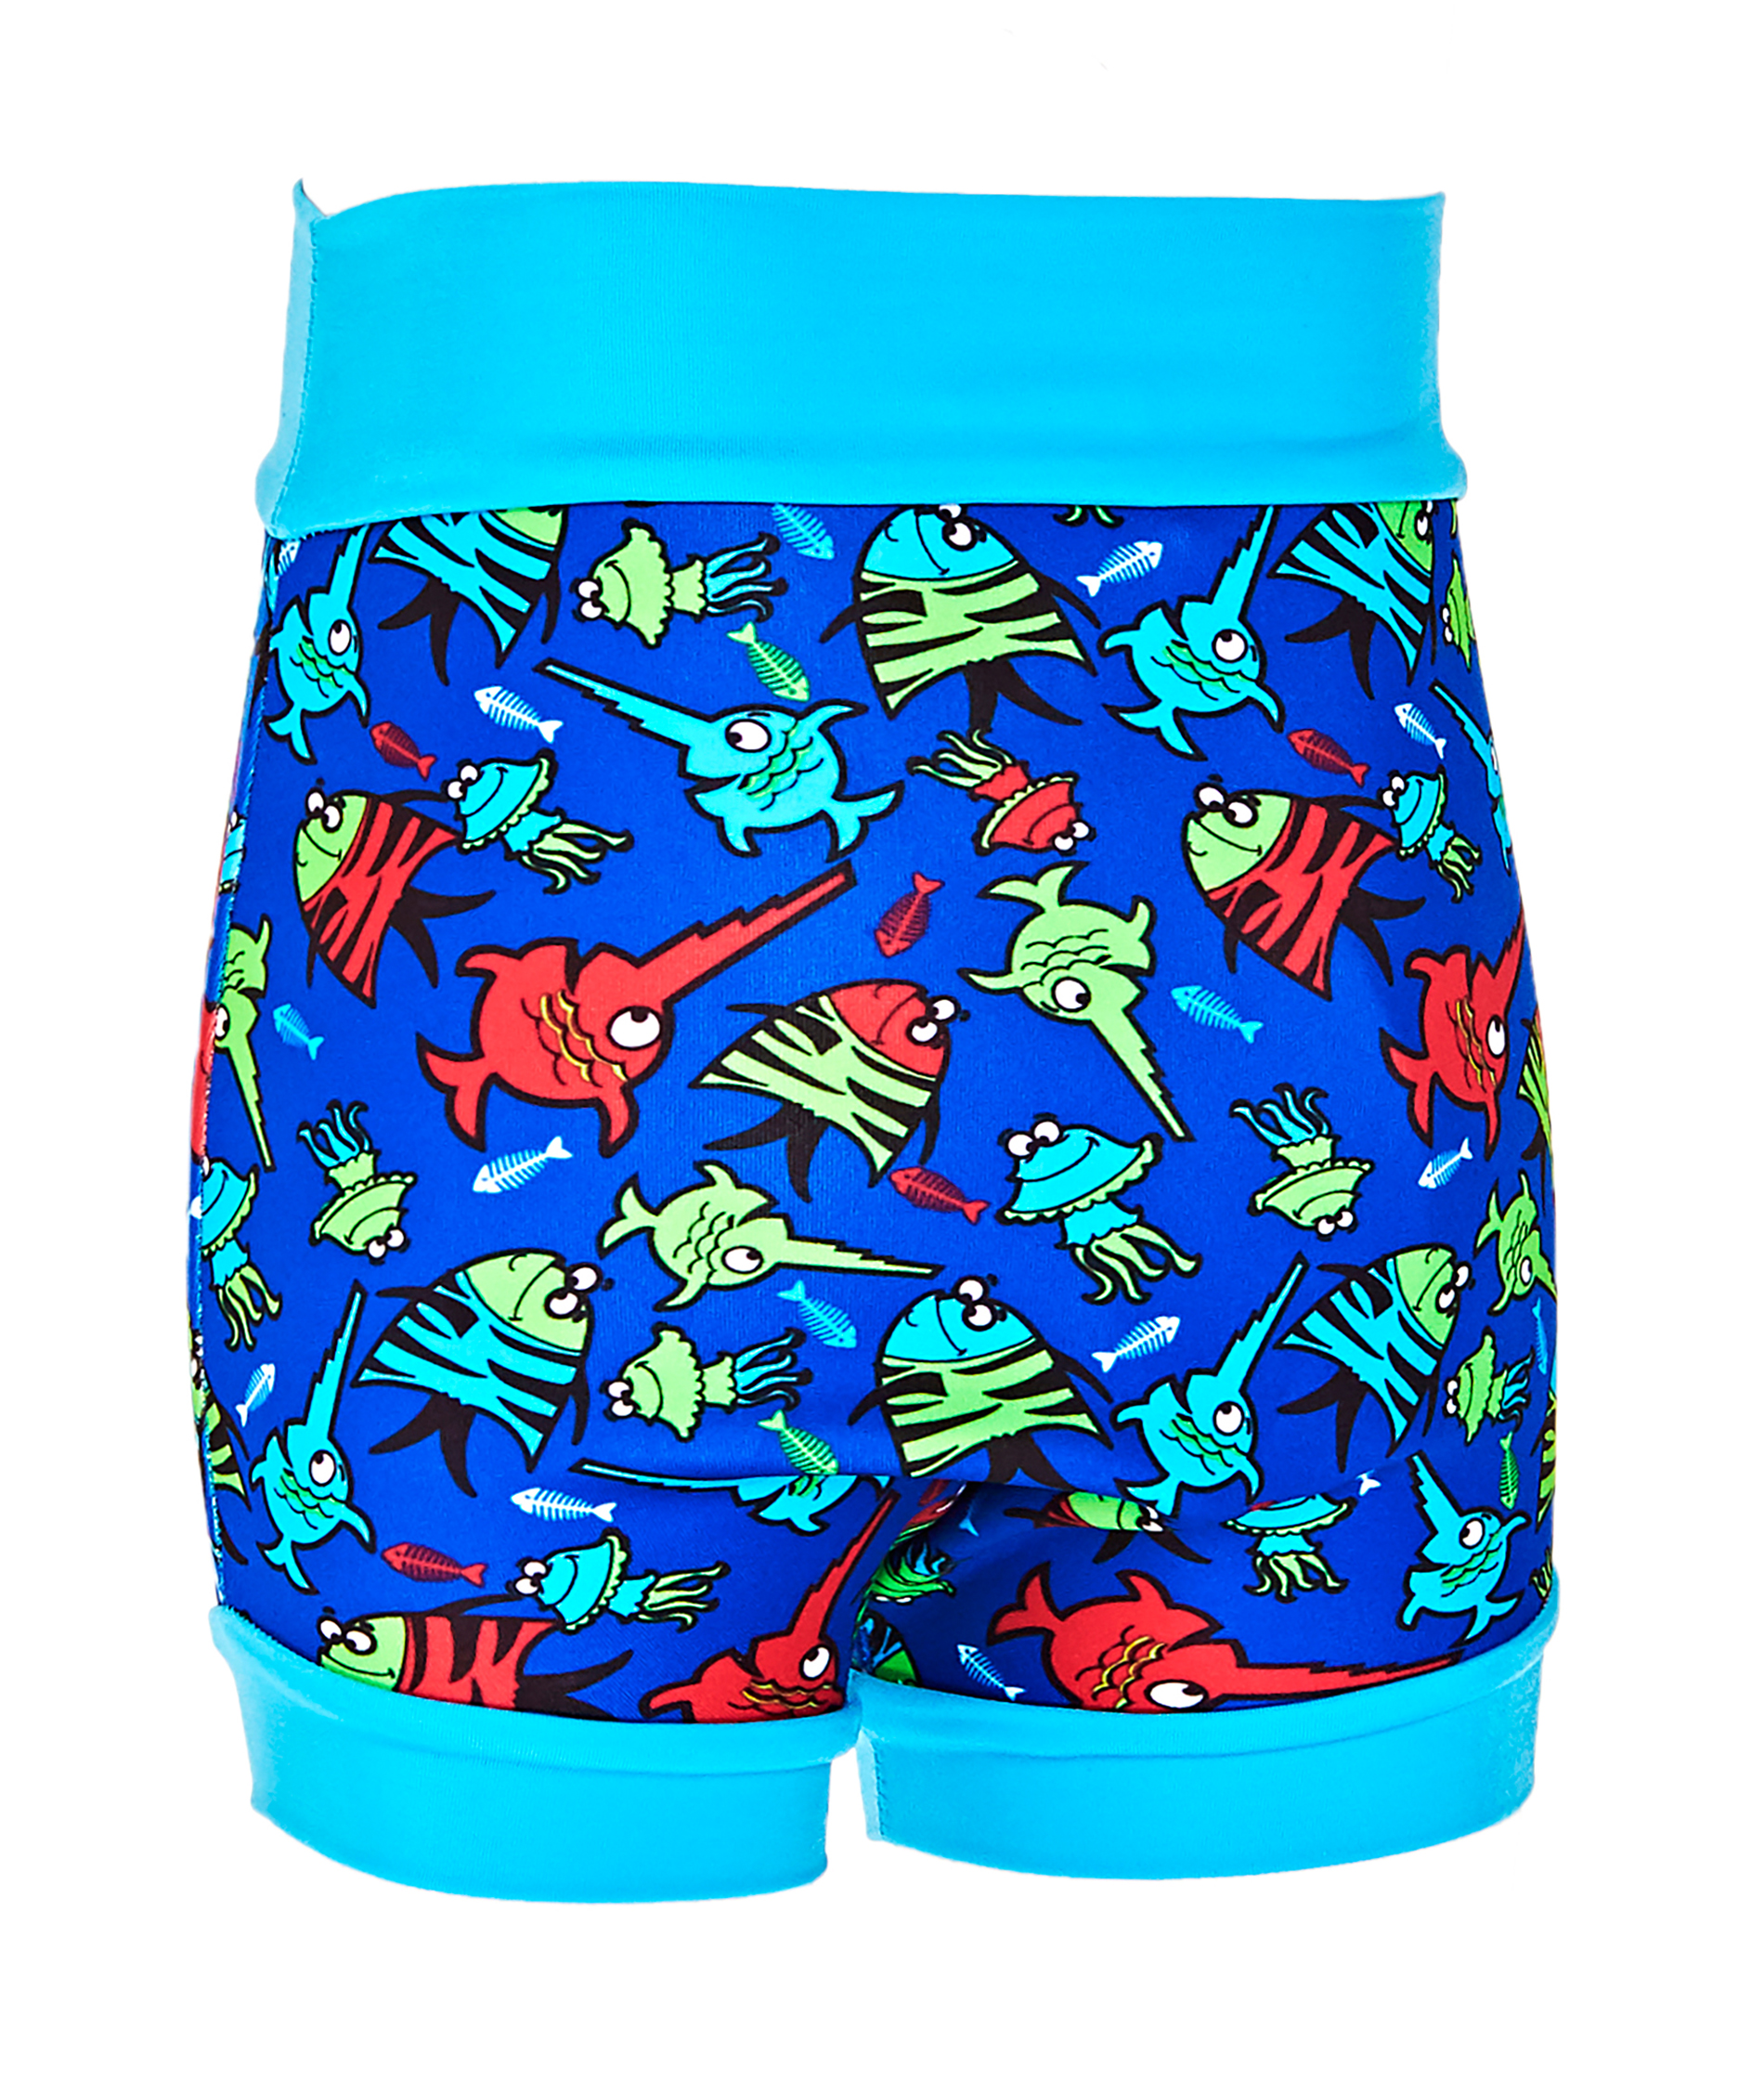 Zoggs Sea Saw Swimsure Nappy